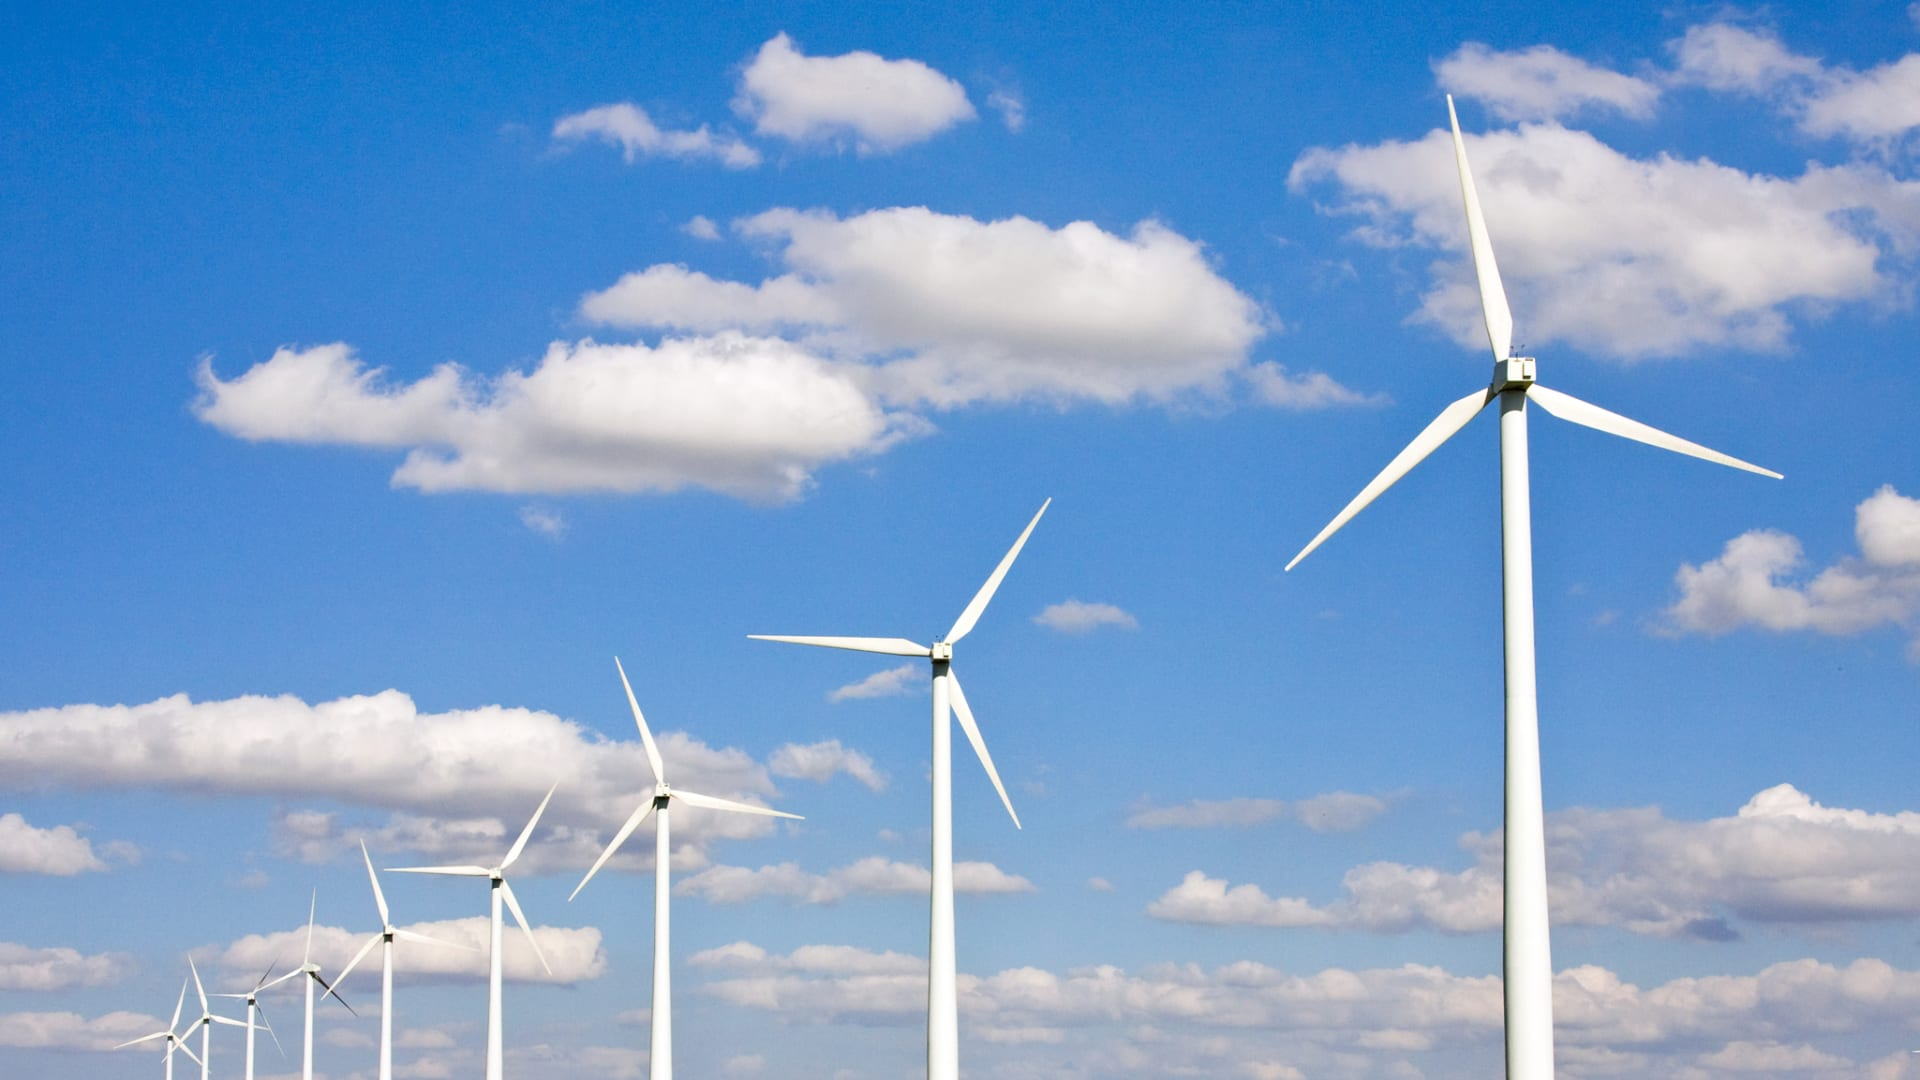 The Department of Energy Awards $127 Million to Green Tech Companies